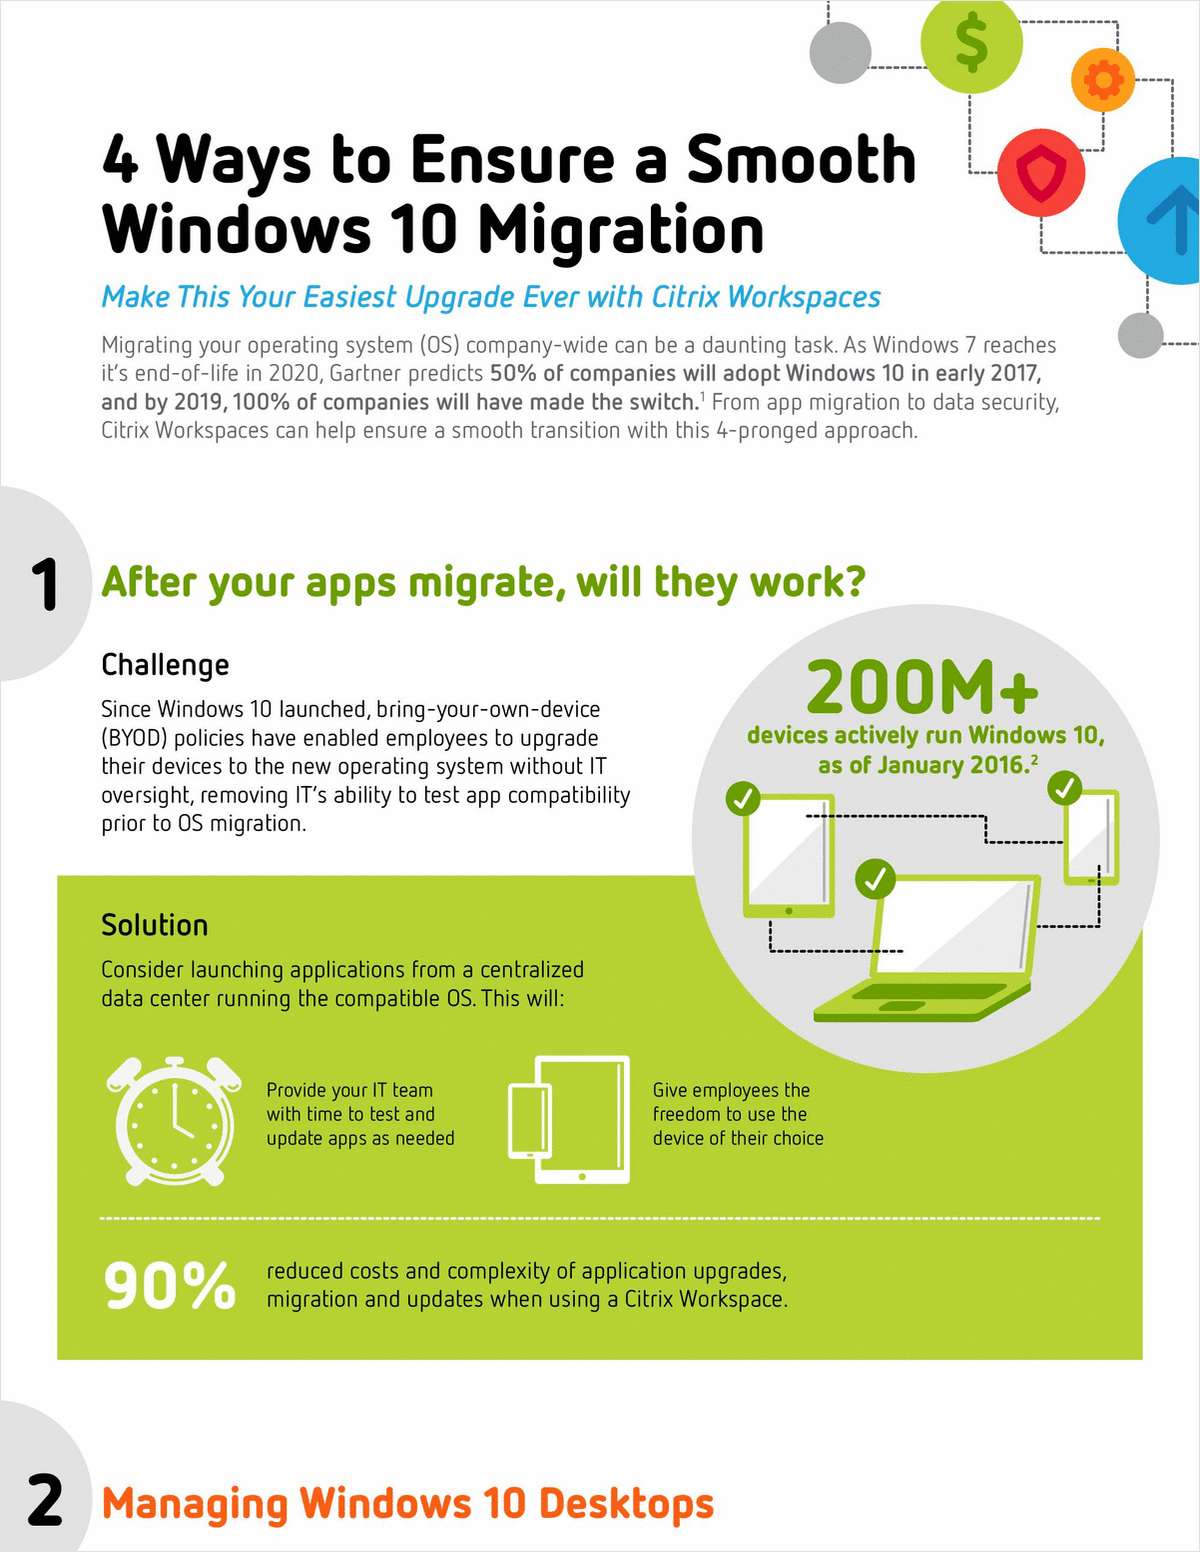 Windows 10: 4 Ways to Ensure Smooth Windows 10 Migration